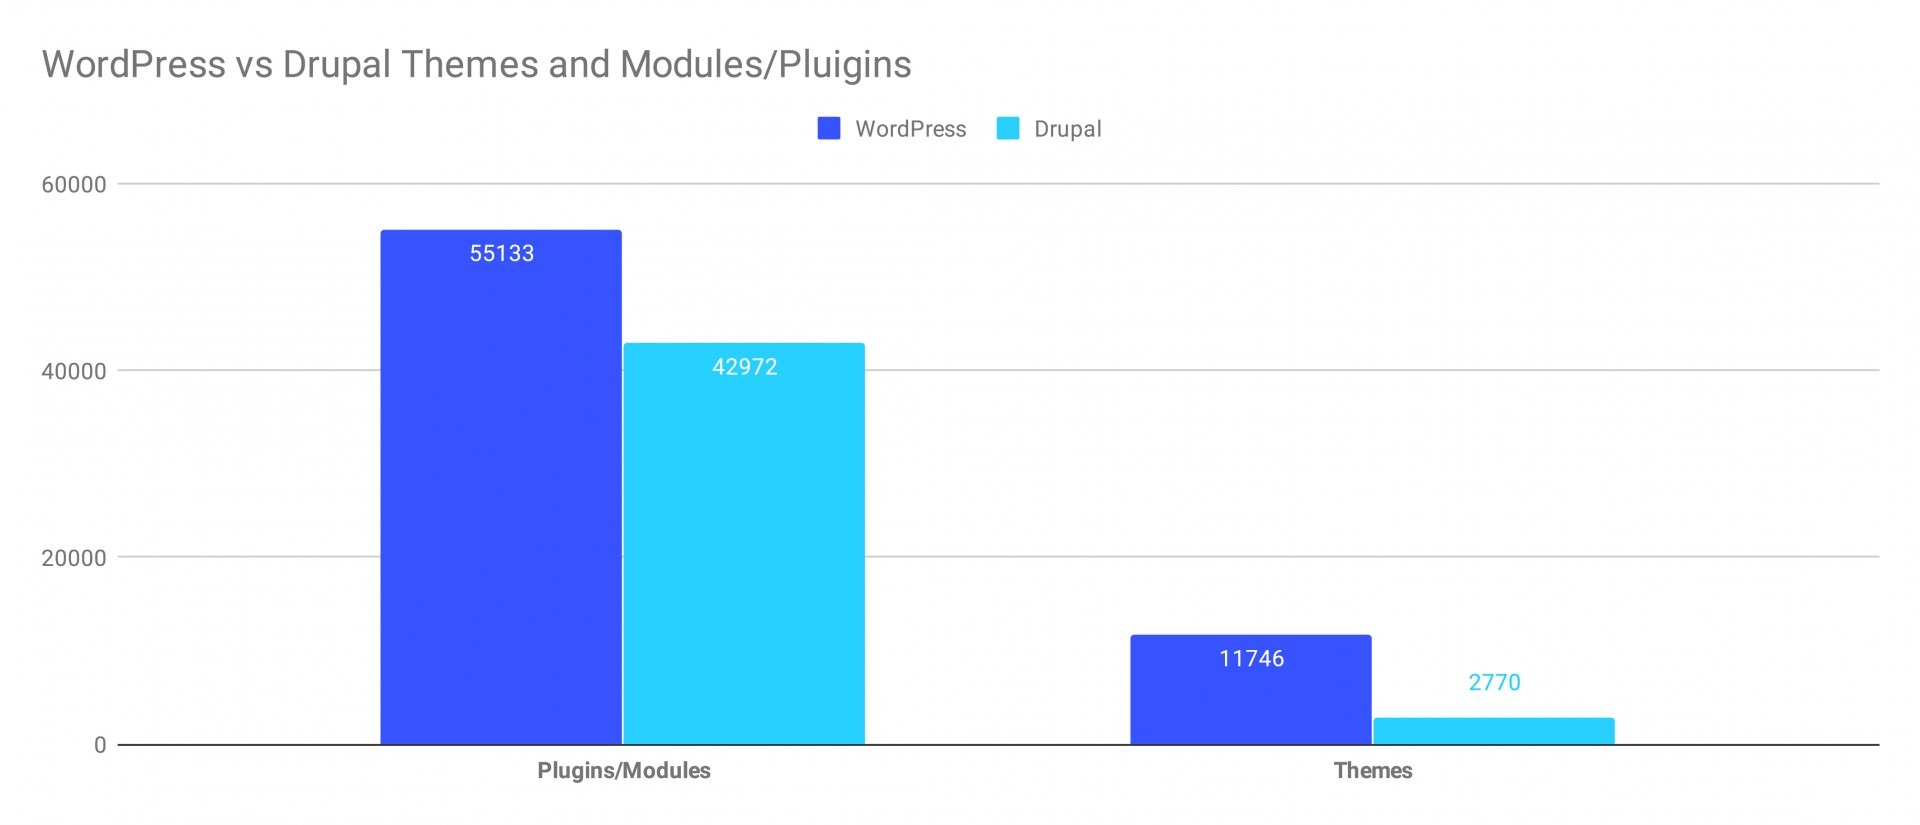 Module and themes statistics for WordPress and Drupal